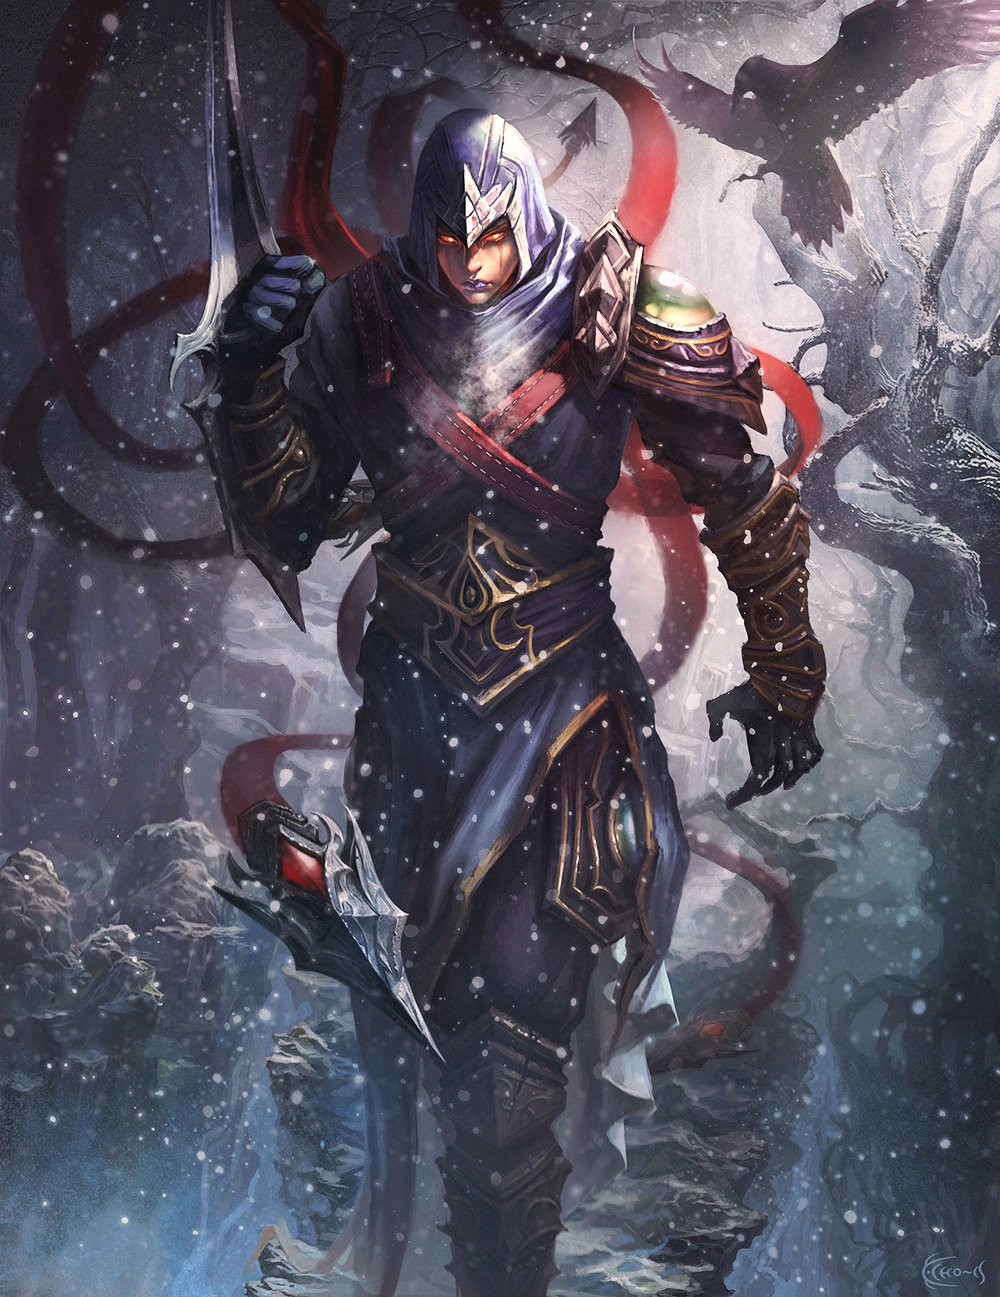 Talon hunting